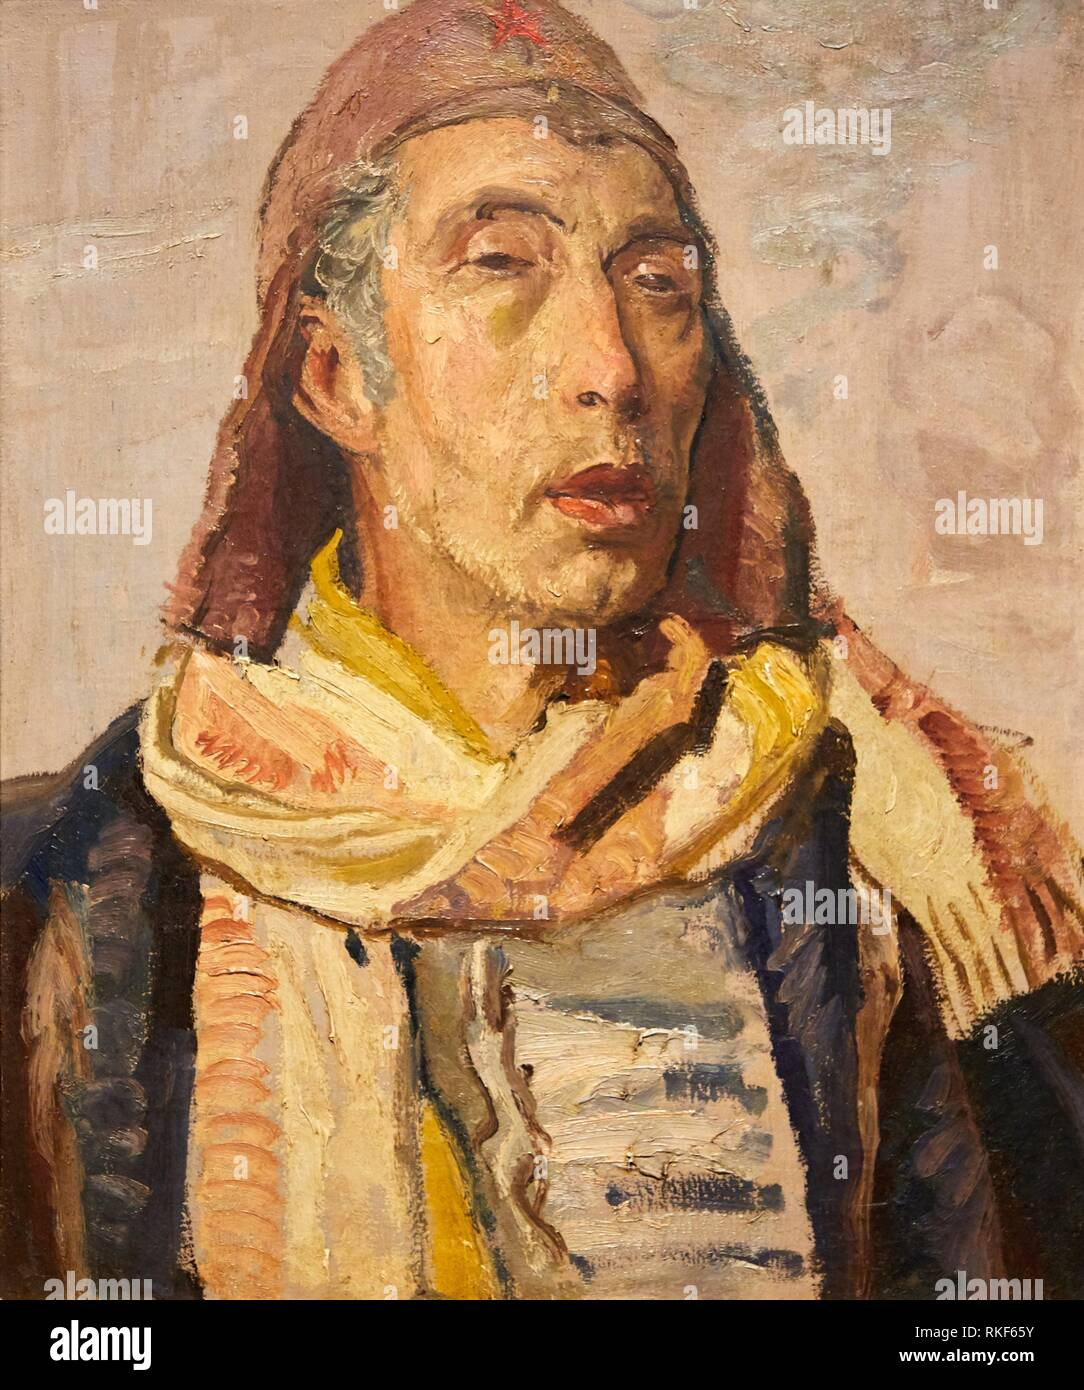 '''Self-portrait as a Soldier in the People's Army'', c.1938, Pere Daura, National Museum of Catalan Art, Museu Nacional d Art de Catalunya, MNAC, - Stock Image